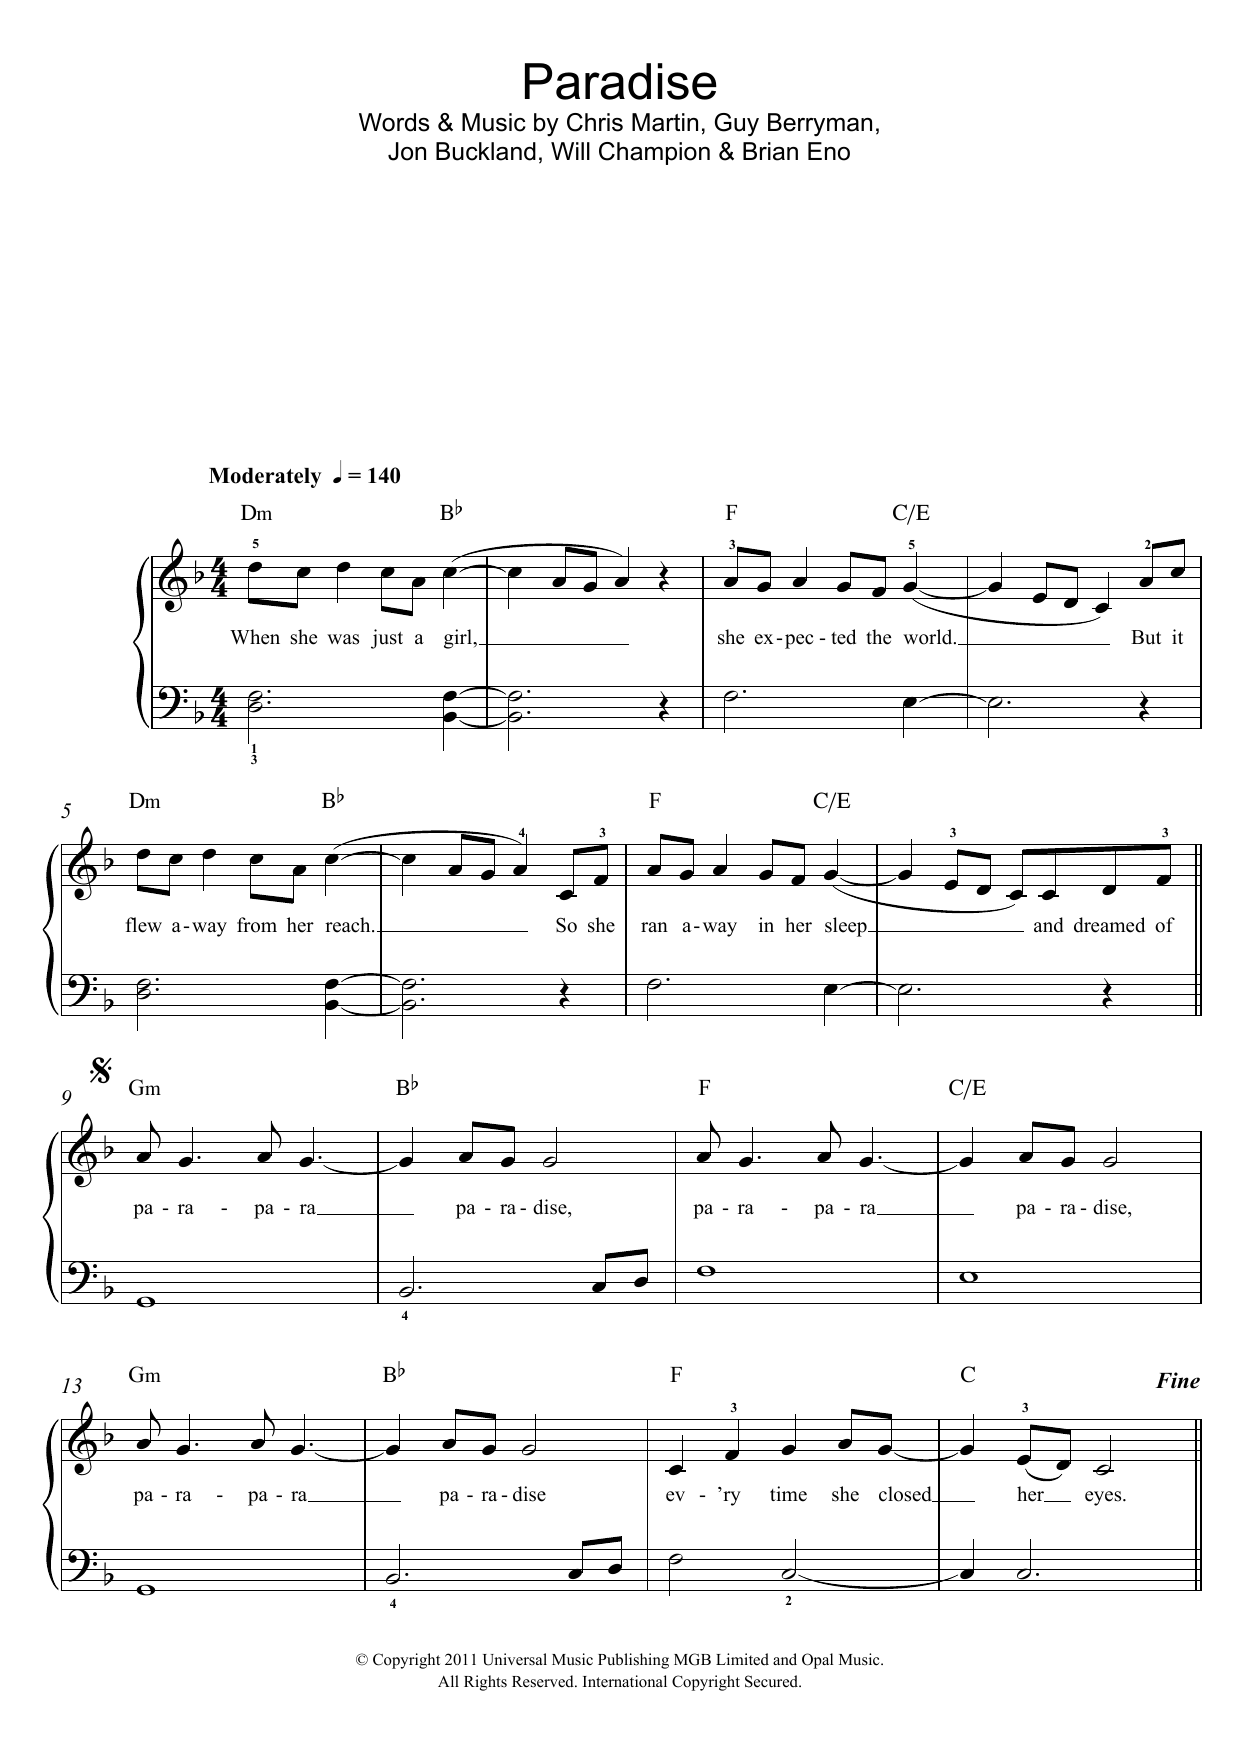 how to play paradise on piano notes